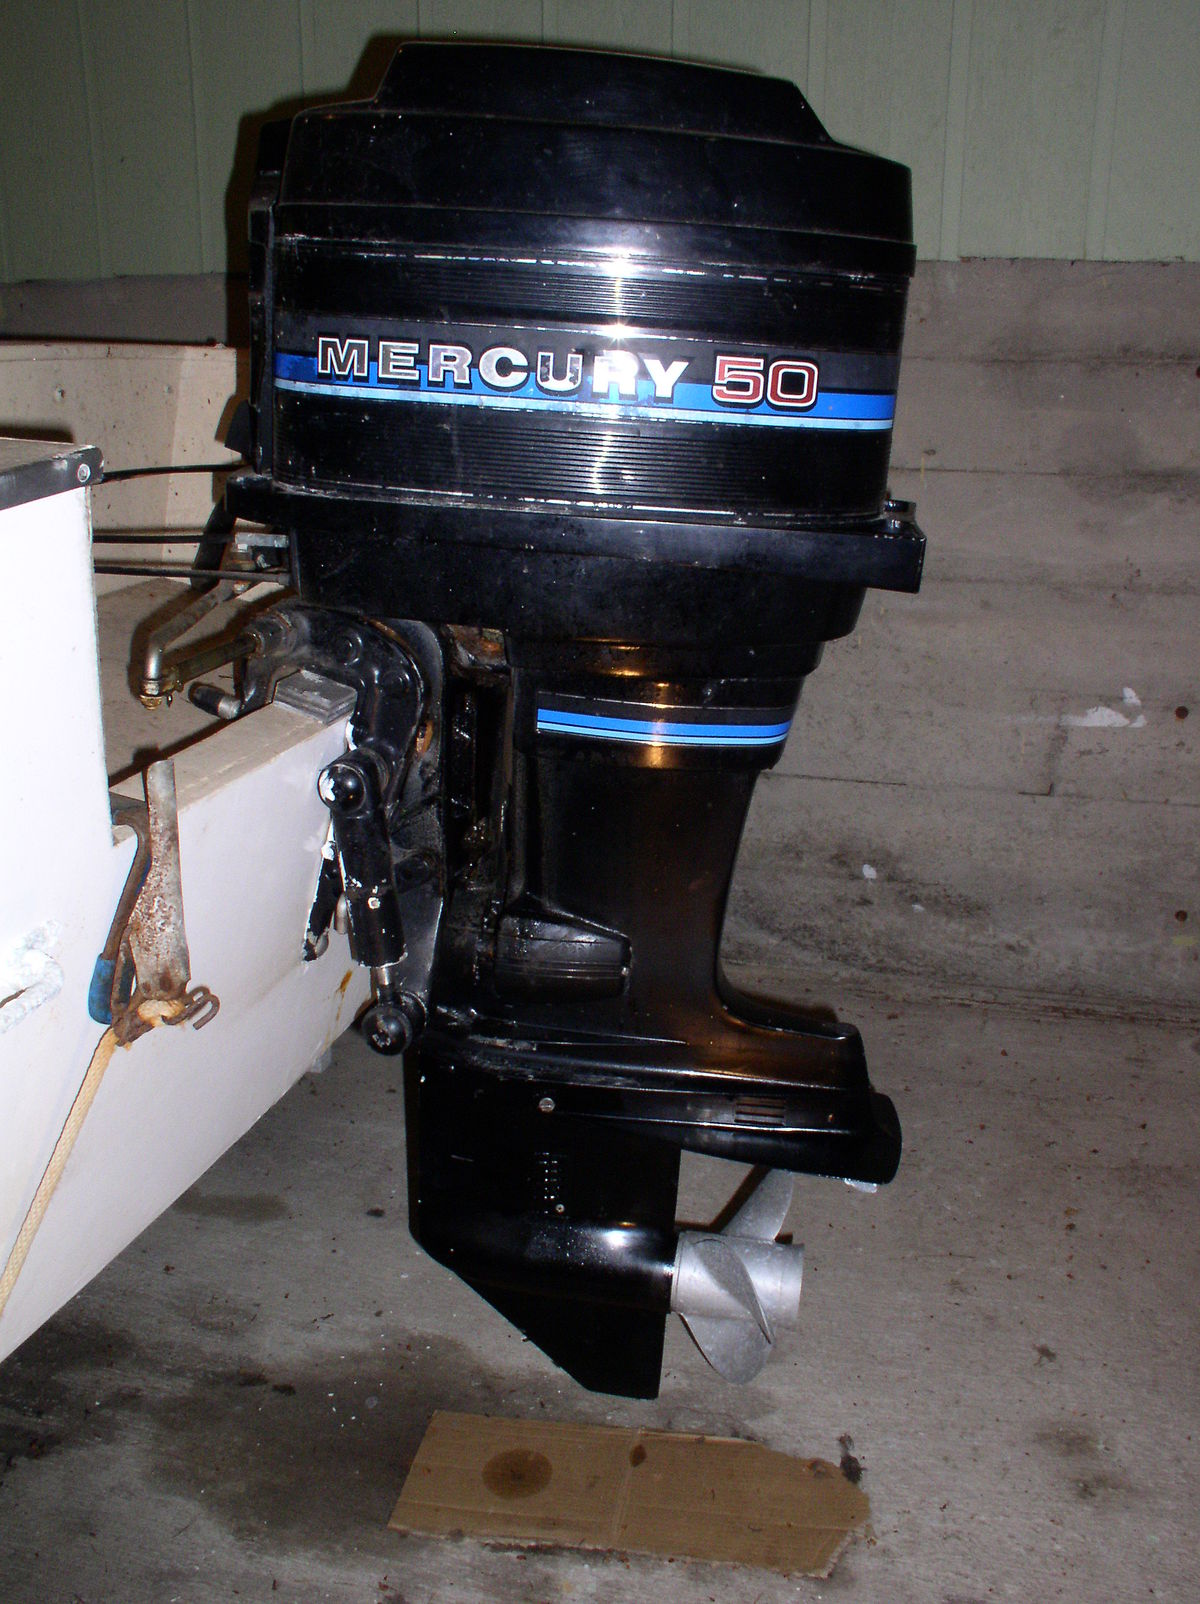 File:Merc 50 hp.jpg - Wikimedia Commons on